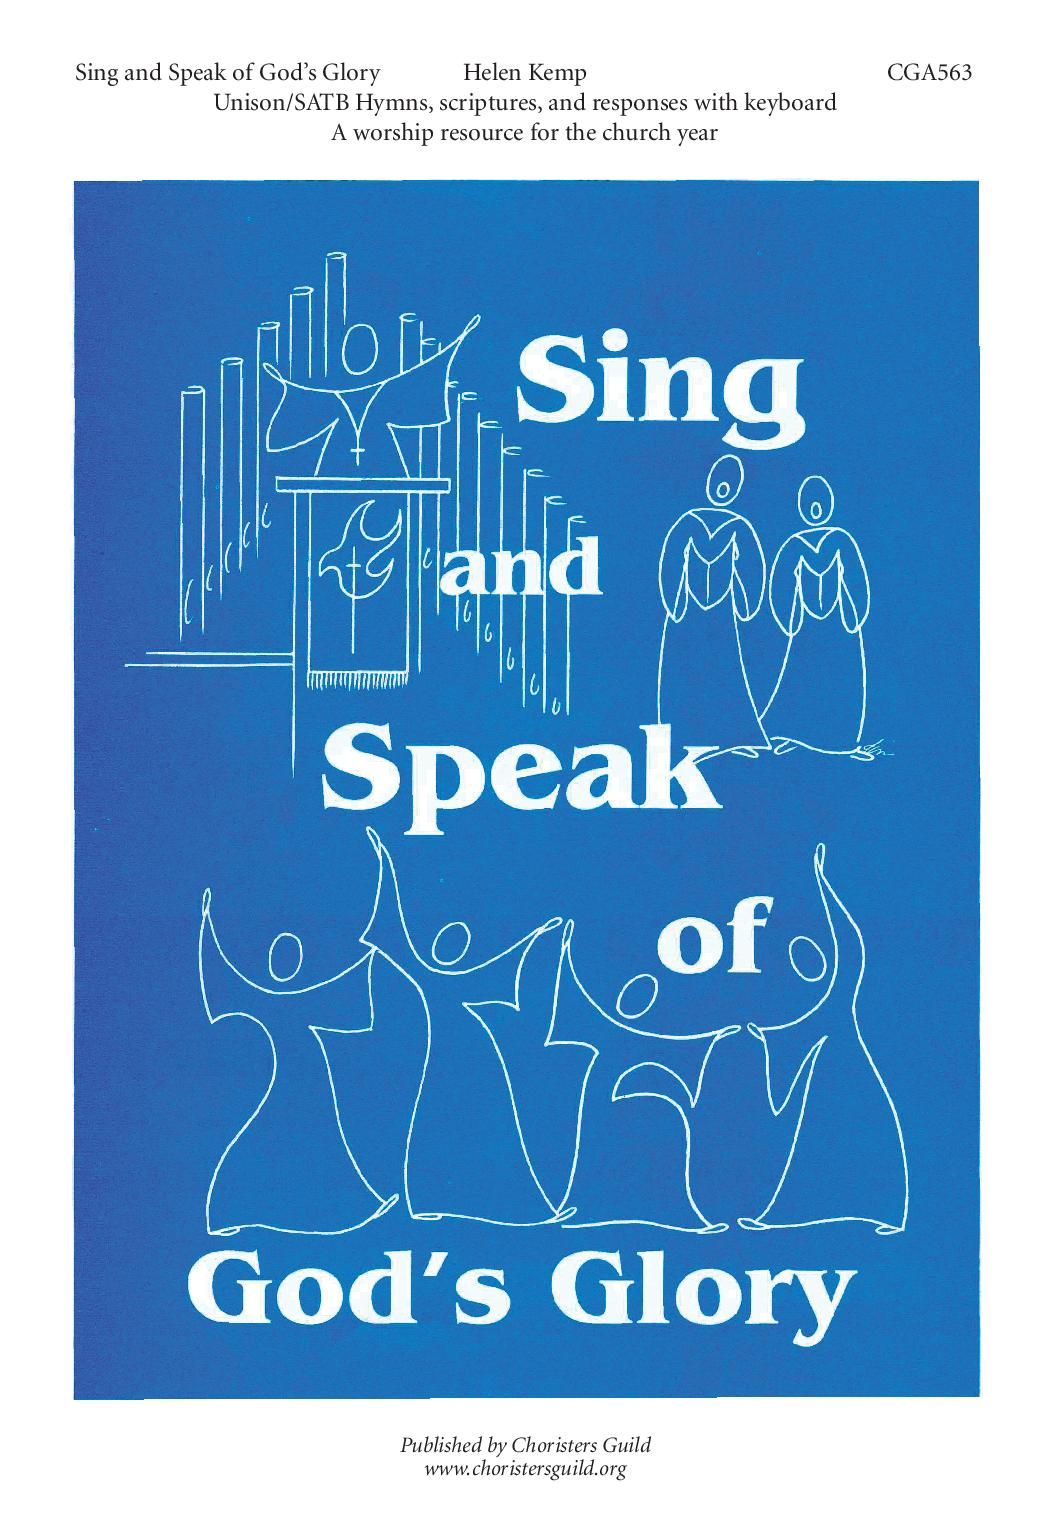 Sing and Speak of God's Glory Hymns, Scriptures and Responses